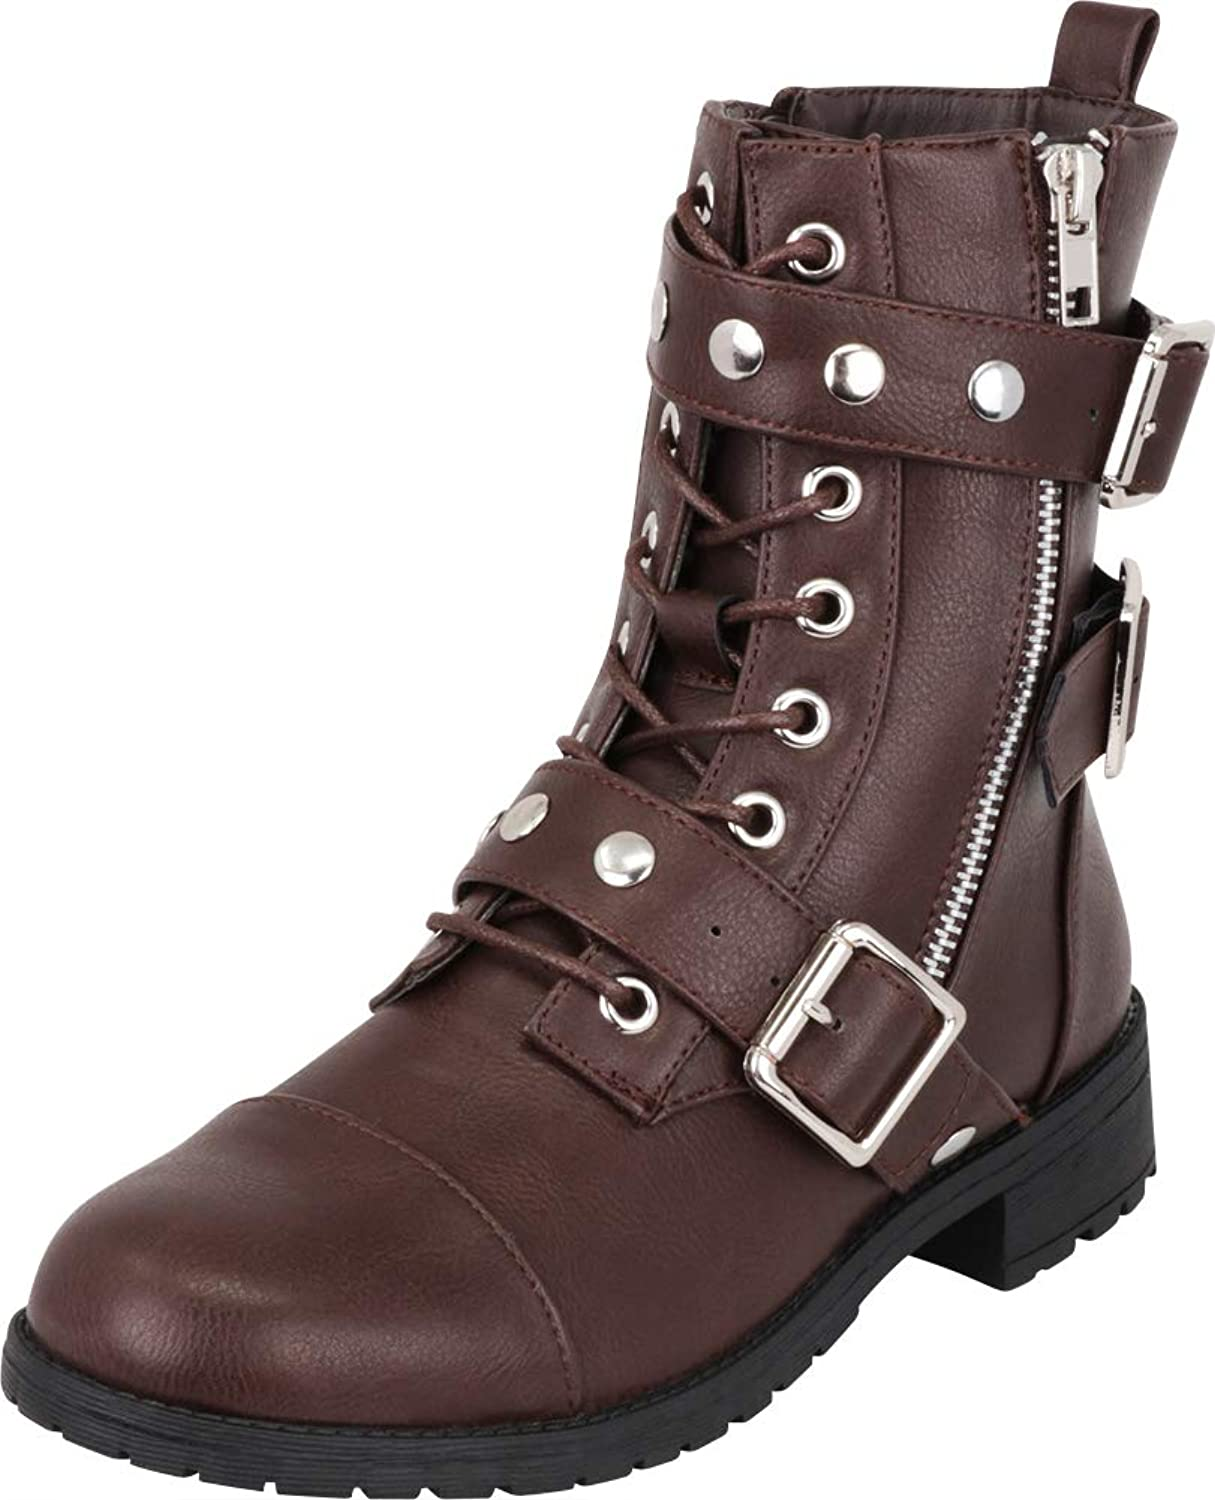 Cambridge Select Women's Moto Studded Strappy Buckle Lace-Up Combat Boot